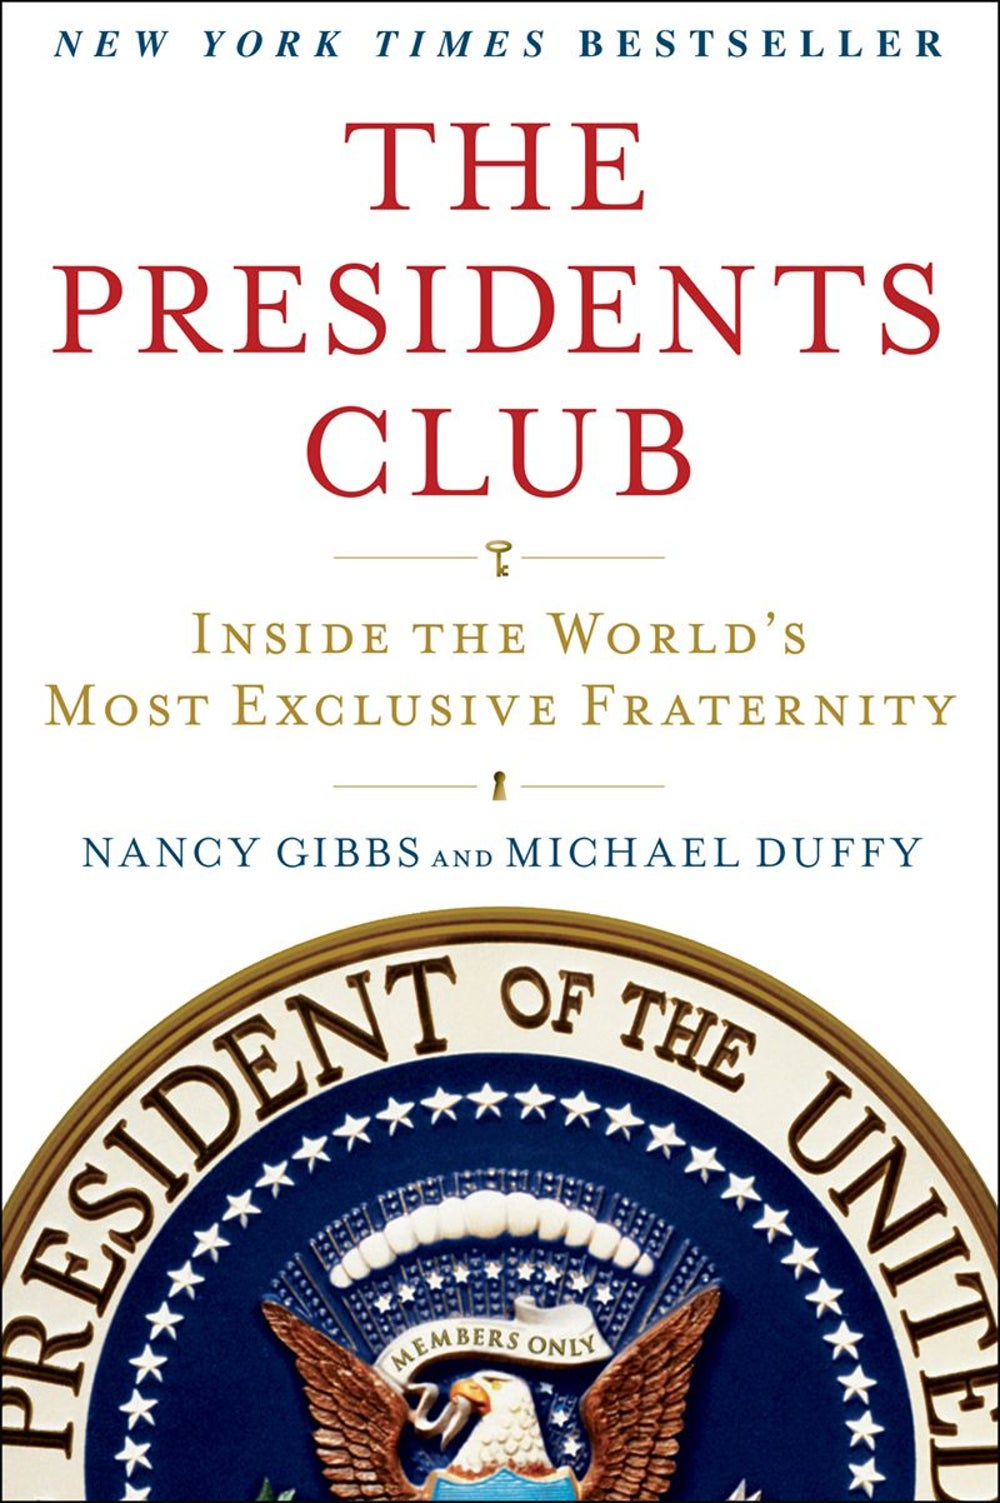 Editorial Director Dan Bova -- 'The Presidents Club: Inside the World's Most Exclusive Fraternity' by Nancy Gibbs and Michael Duffy